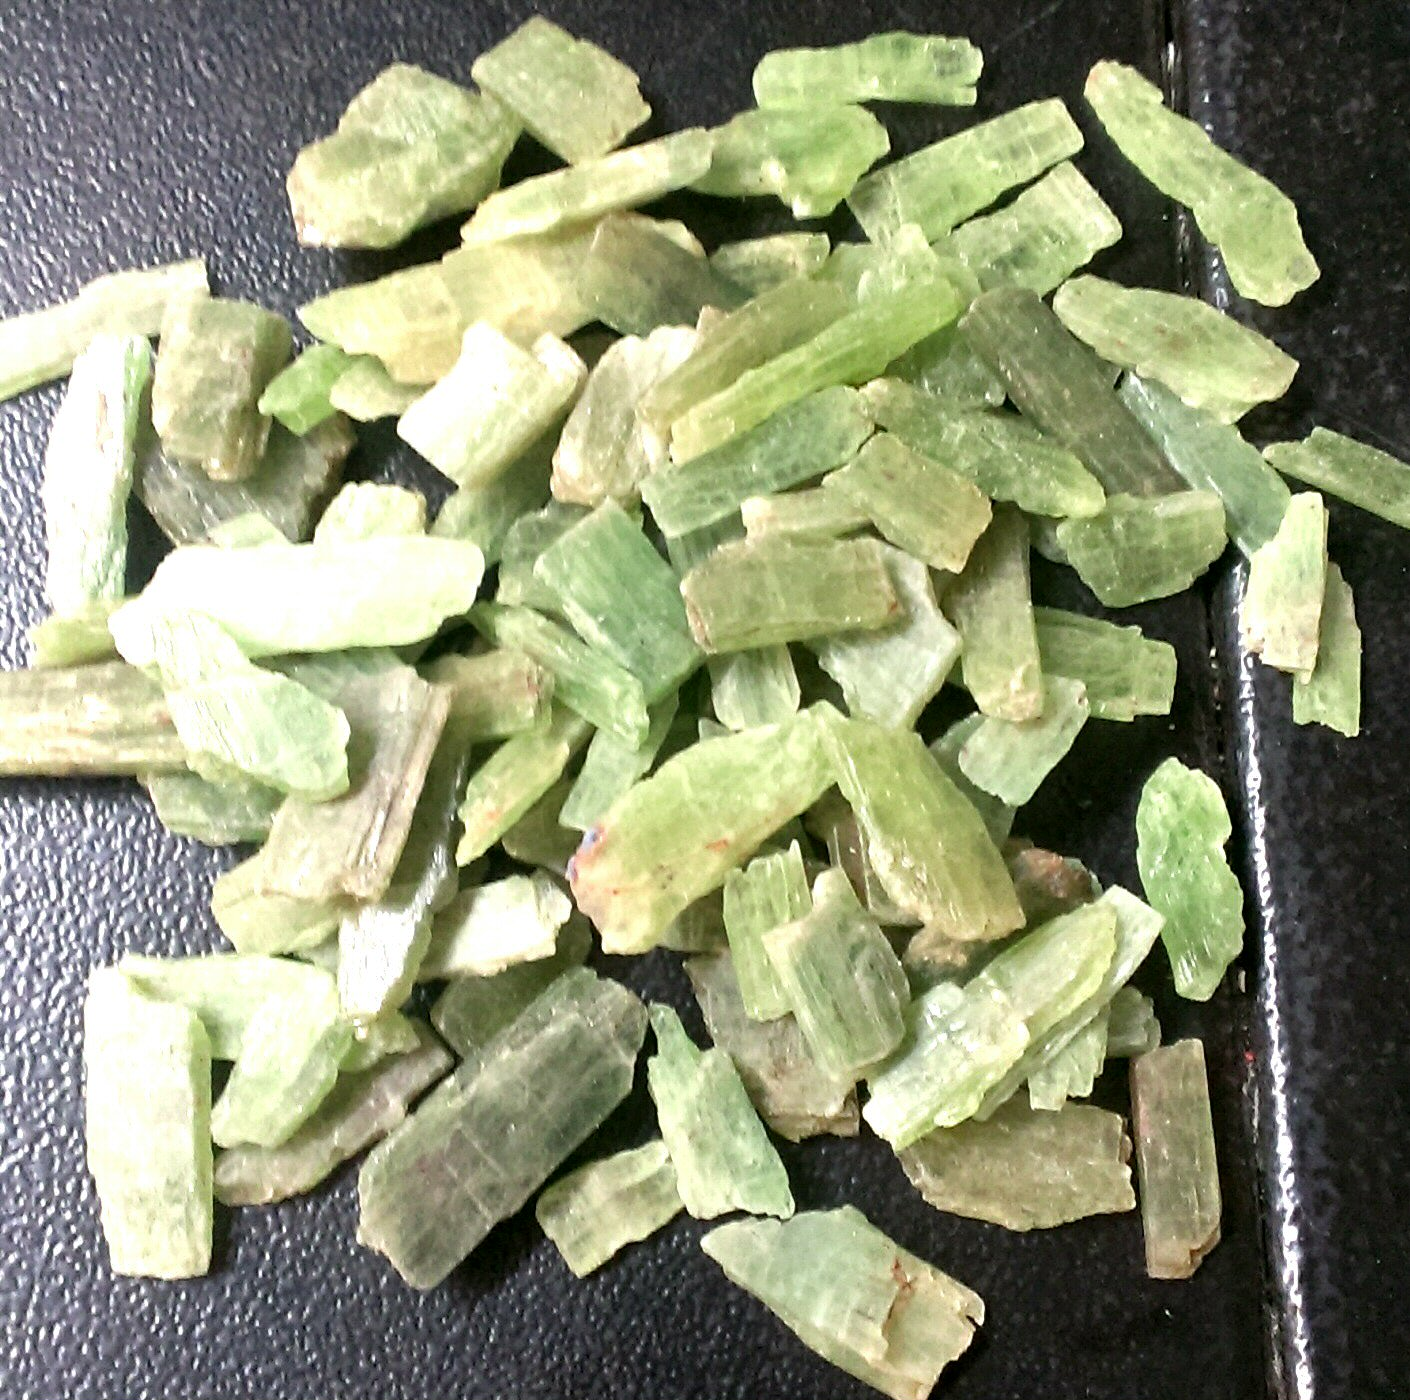 Green Cyanite